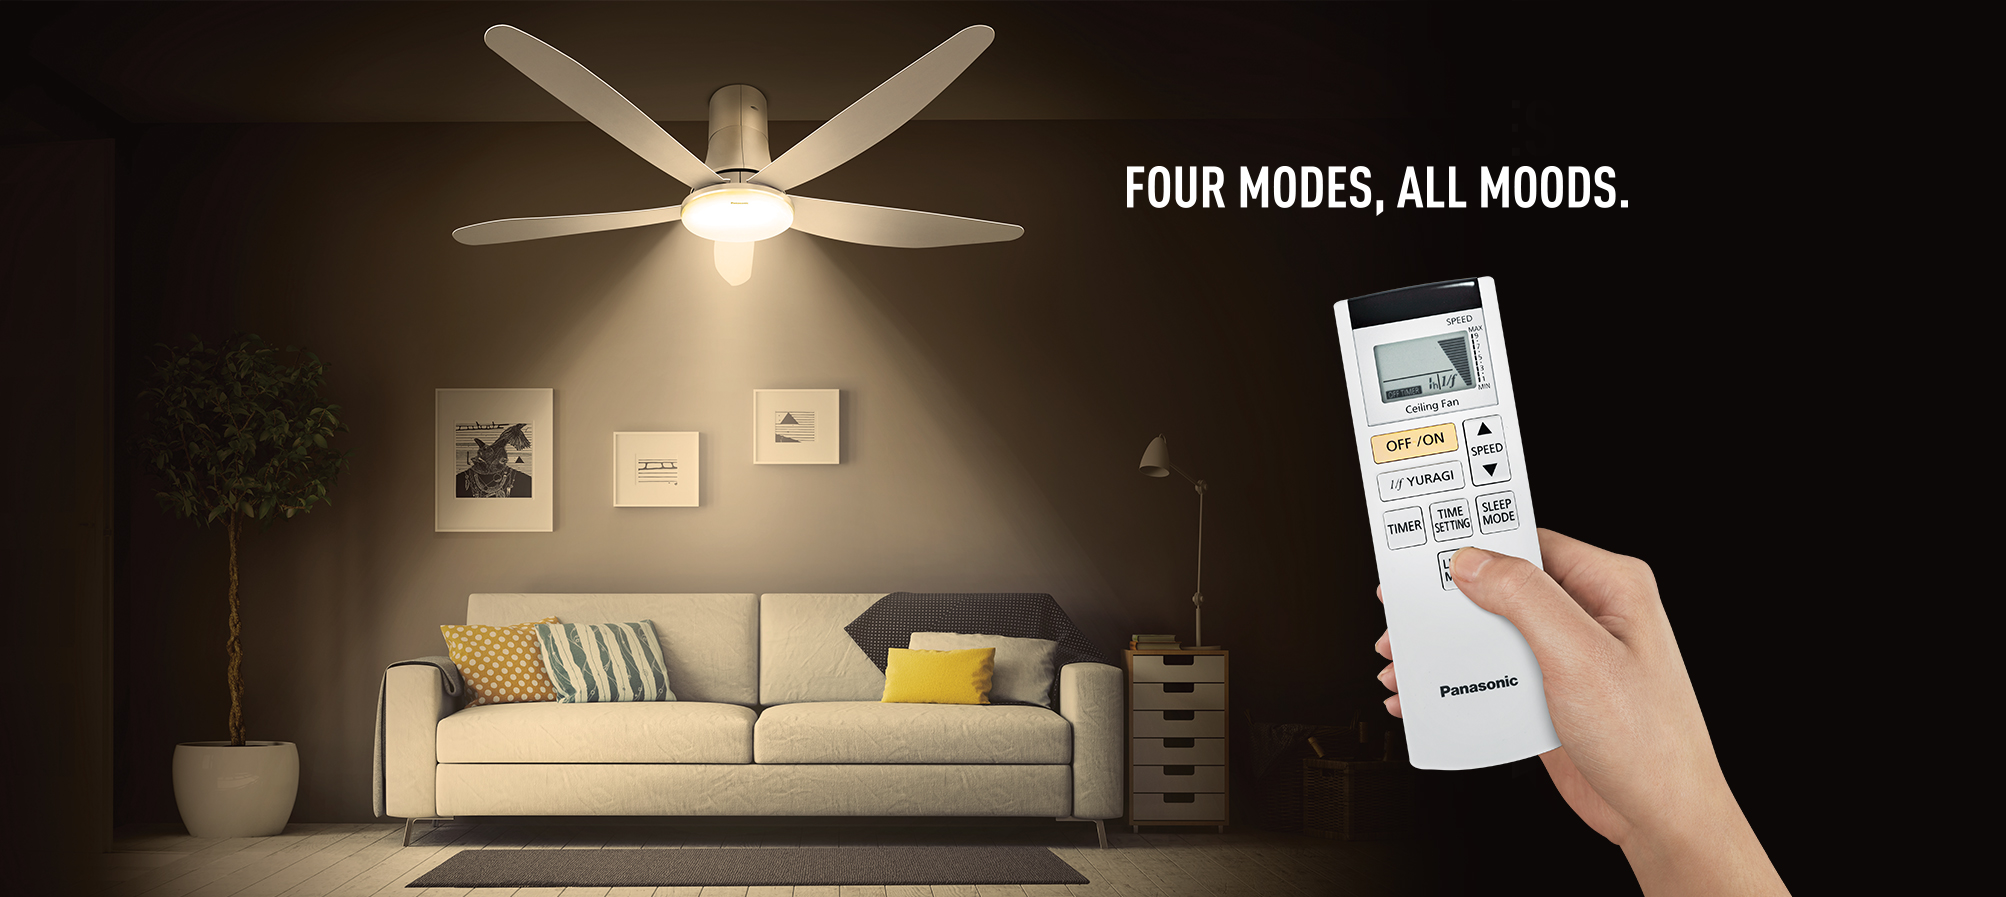 Panasonic Ceiling Fans Combine Beautiful Contemporary Designs With Innovative Technology Creating Strong Airflows Which